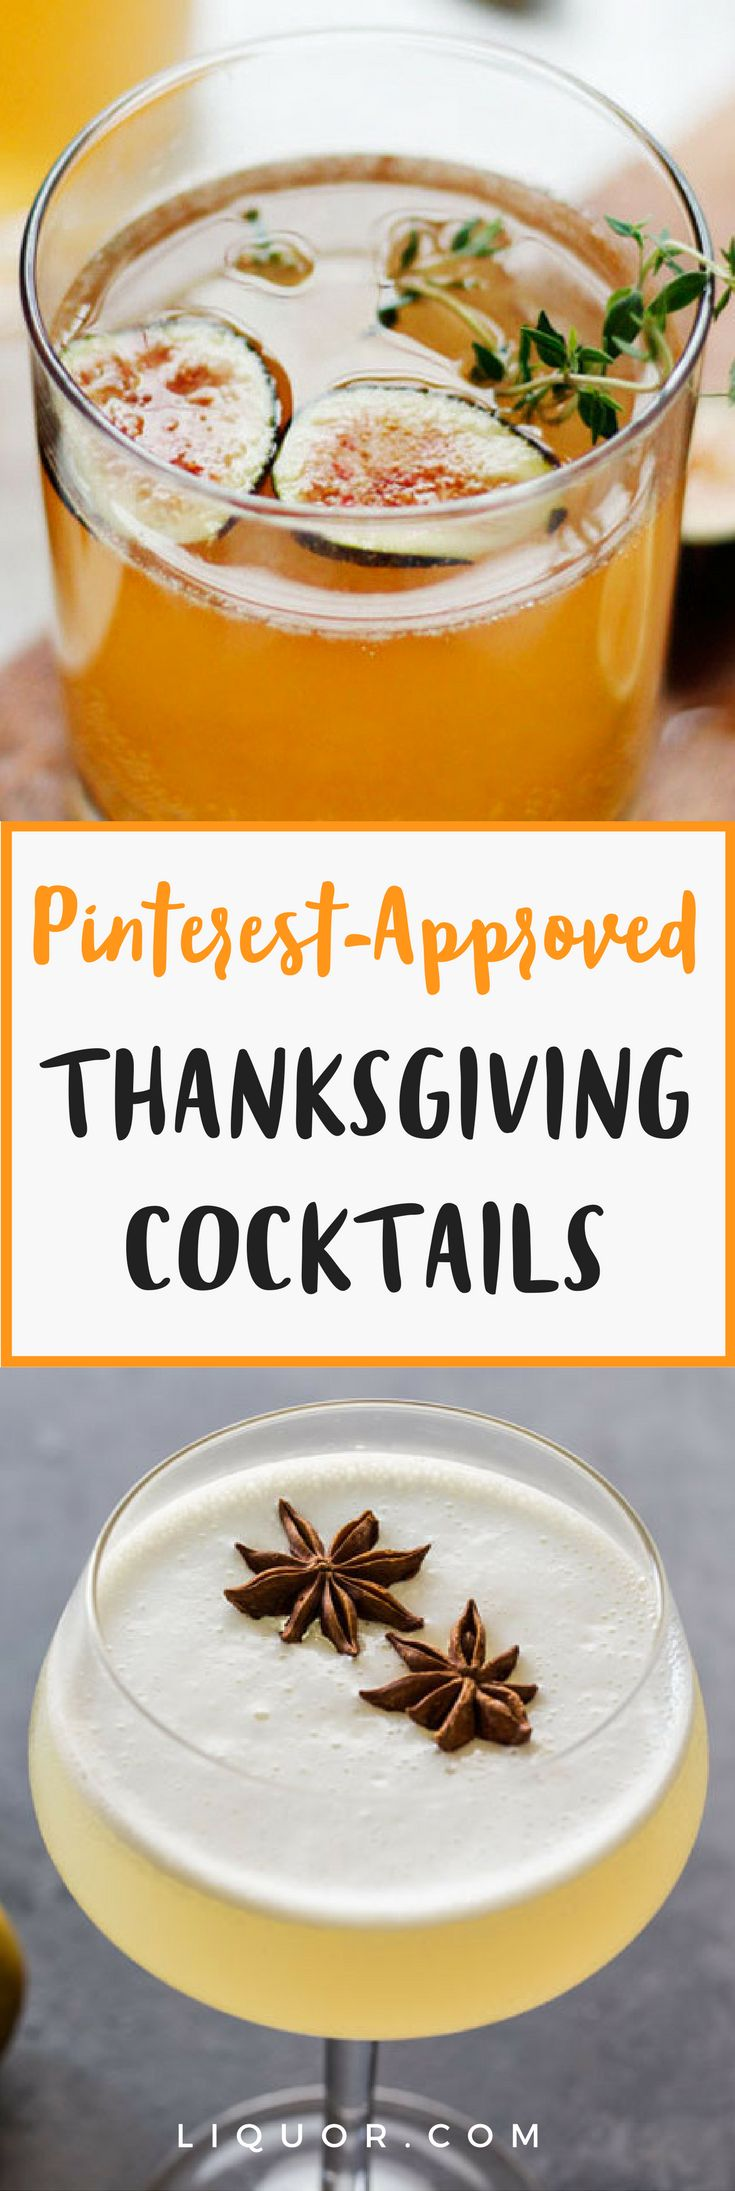 2611 best cocktails images on pinterest drink recipes for Thanksgiving holiday drinks alcohol